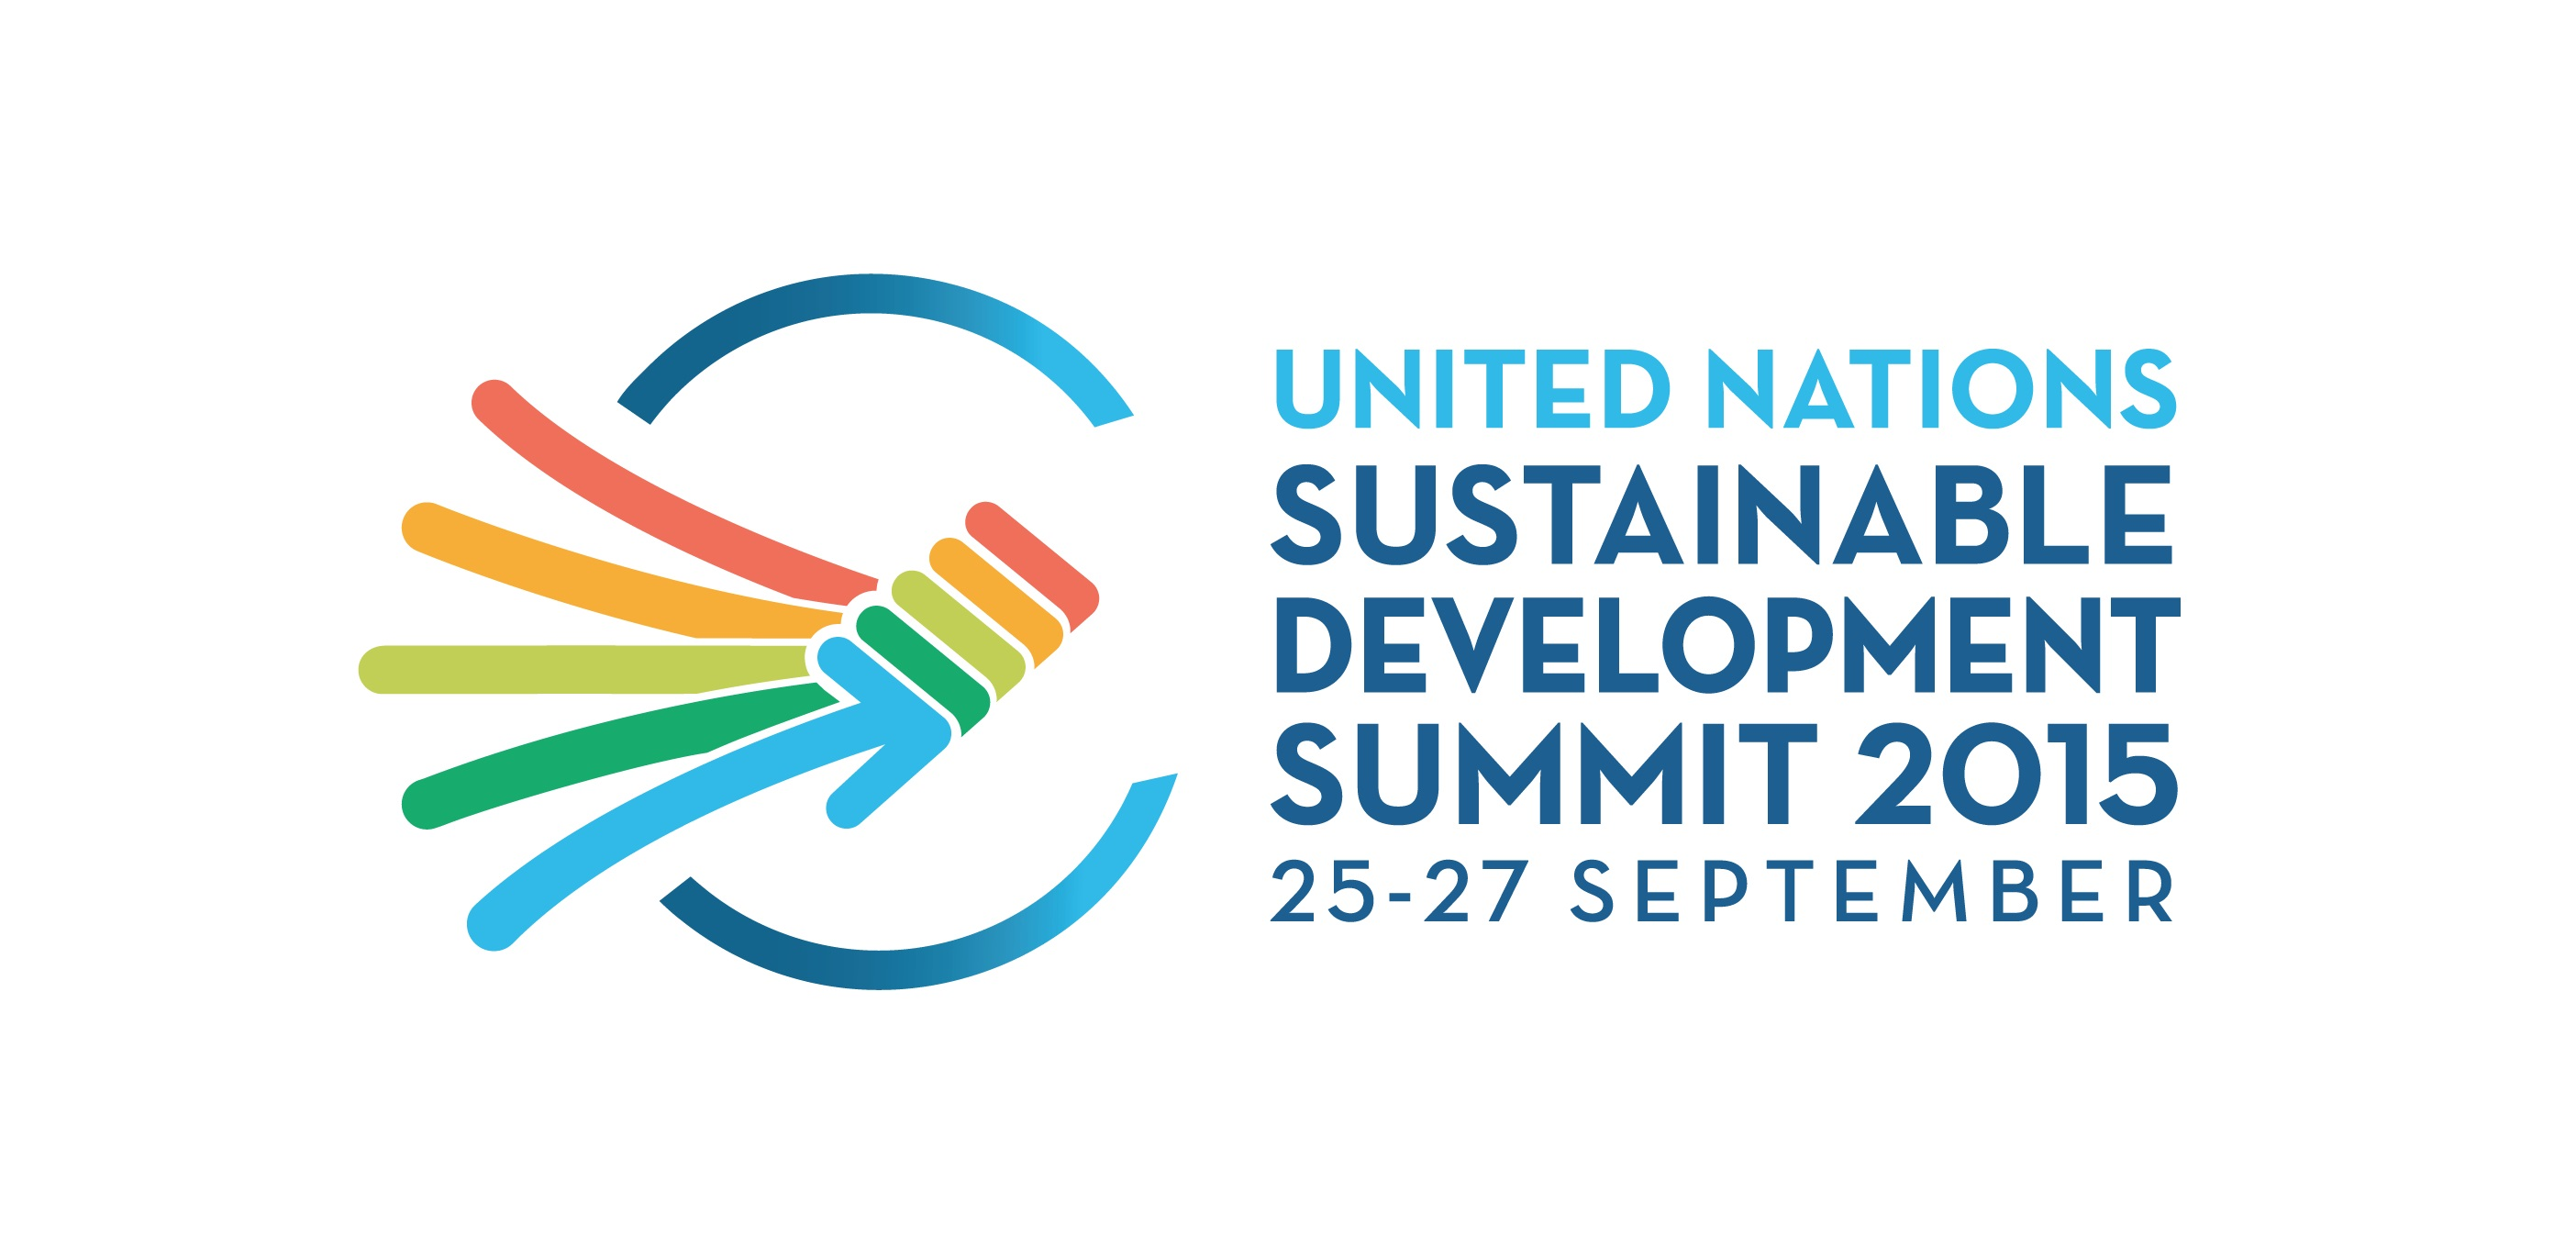 the developmental goals of the millennium summit of the united nations in 2000 It was the start of a new millennium, which marks a thousand years global leaders agreed that we should all do more to fight poverty, so that world leaders from more than 150 countries were at the united nations millennium summit in 2000 they agreed that the problems suffered by the world's.